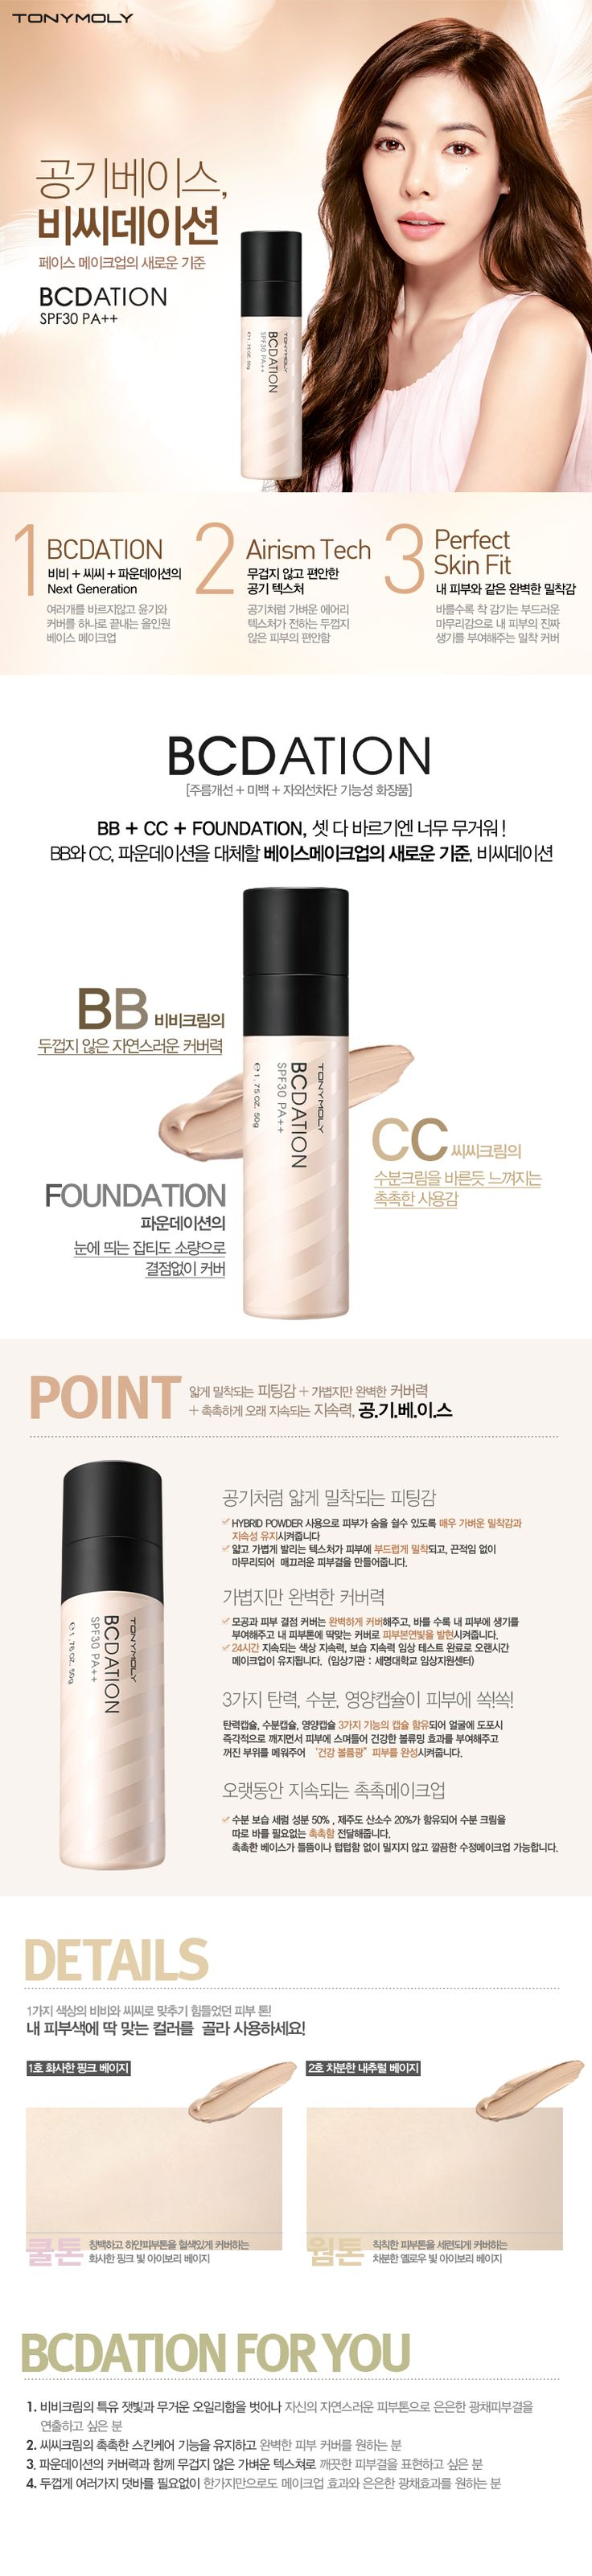 Tony Moly BCDation SPF30 PA++ | The Cutest Makeup